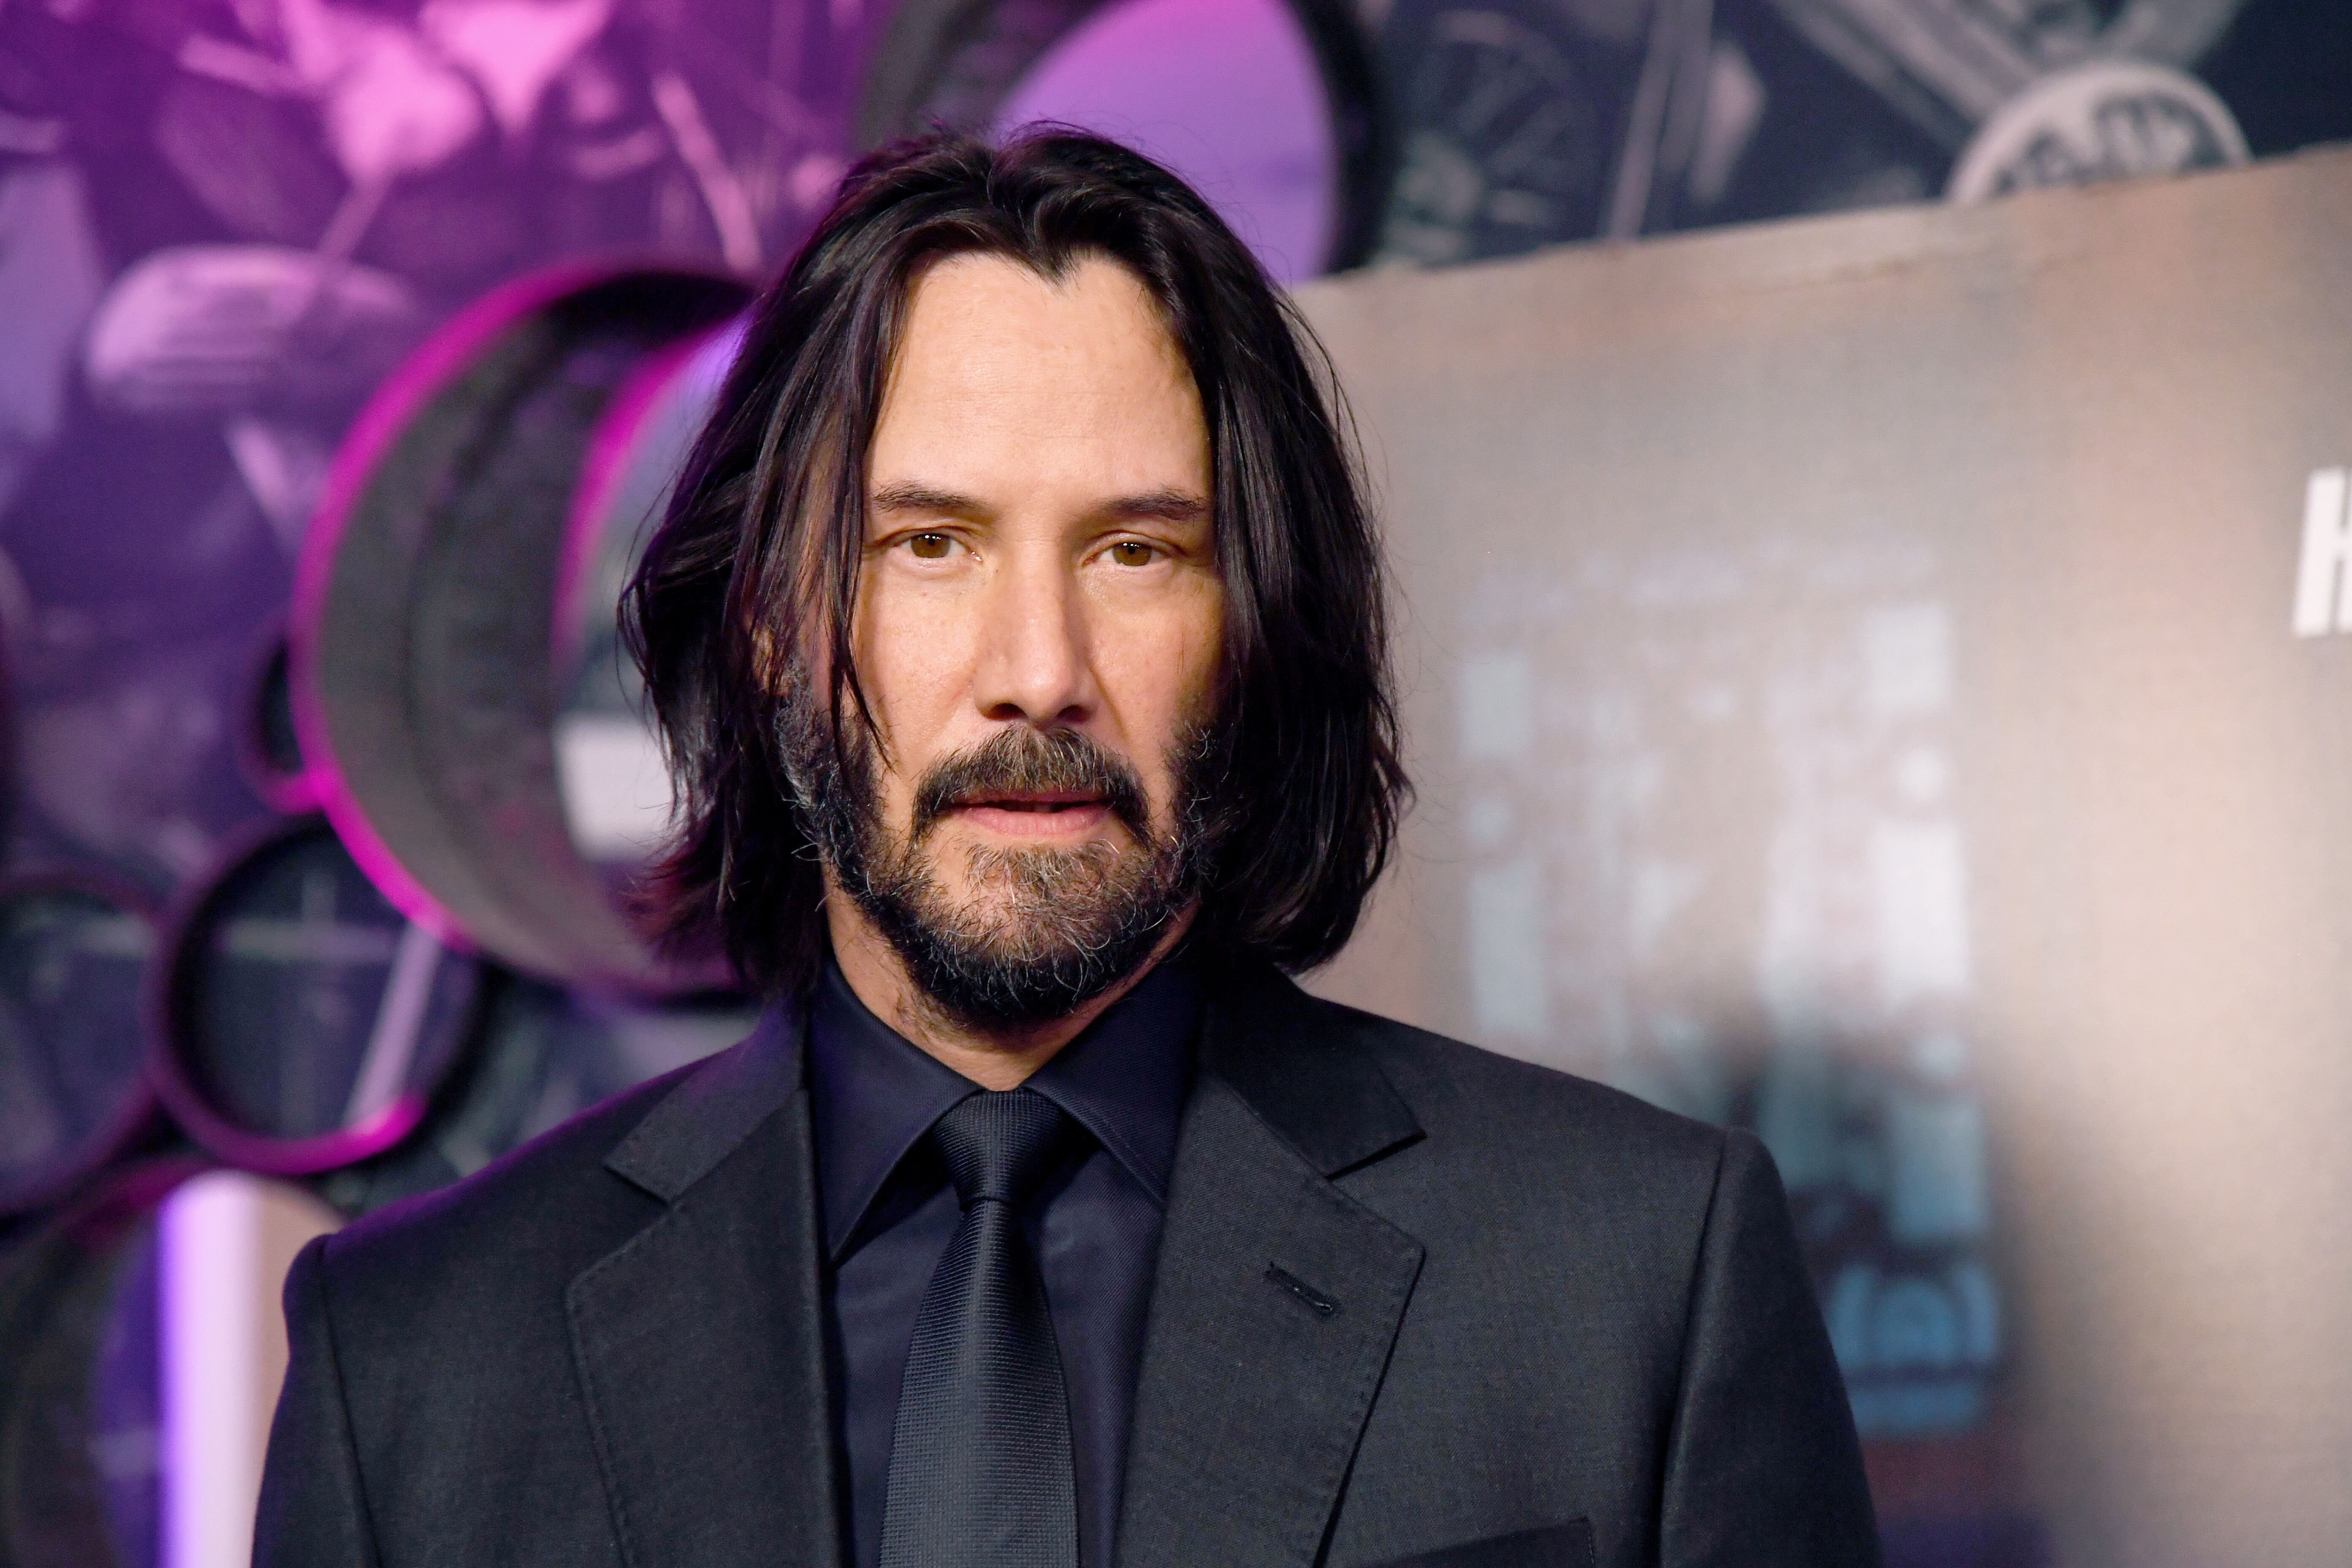 Keanu Reeves or Stunt Double Recorded Jumping from a San Francisco Skyscraper for 'Matrix 4'